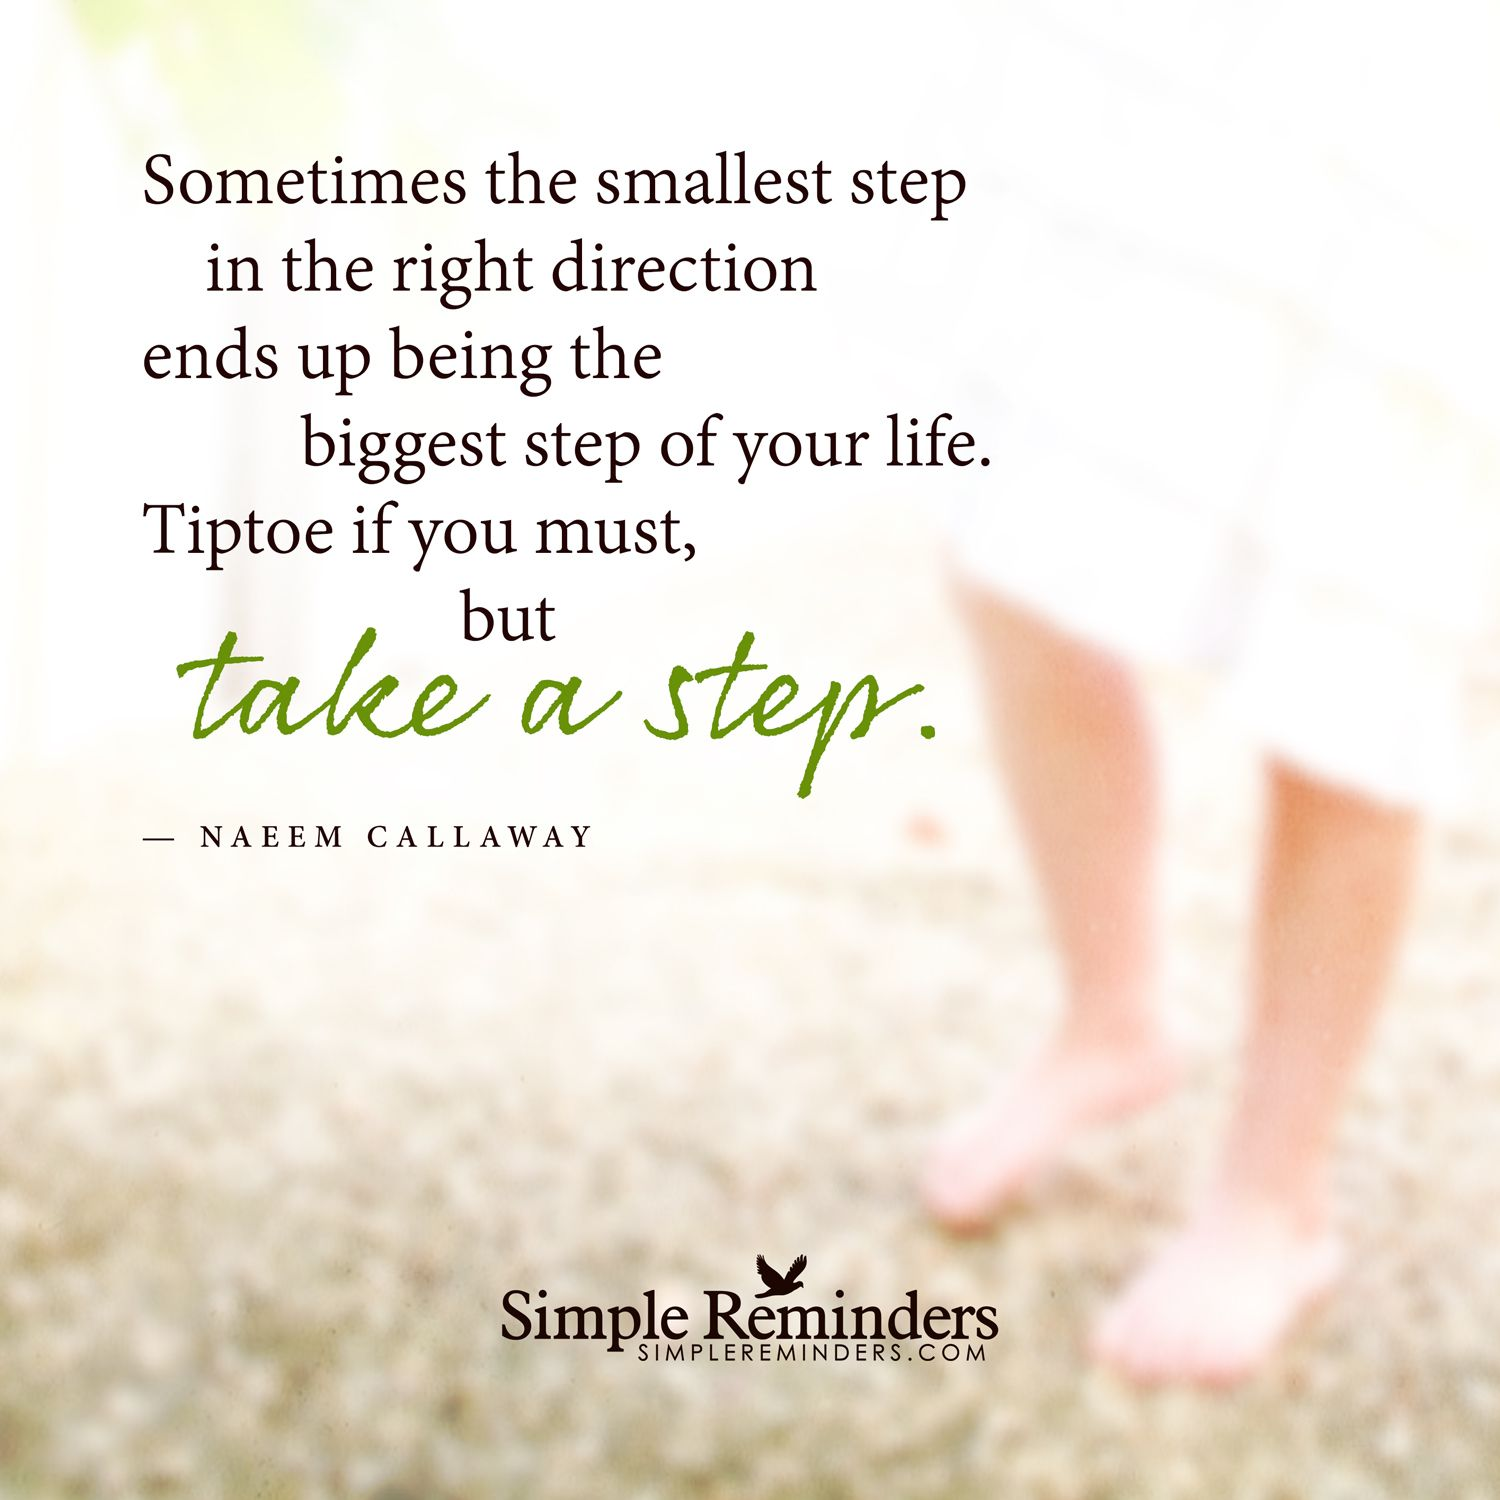 steps in the right direction essay You've come to the right place  today or you're looking to start your application  a bit further down the road, these five steps will guide you in the right direction.